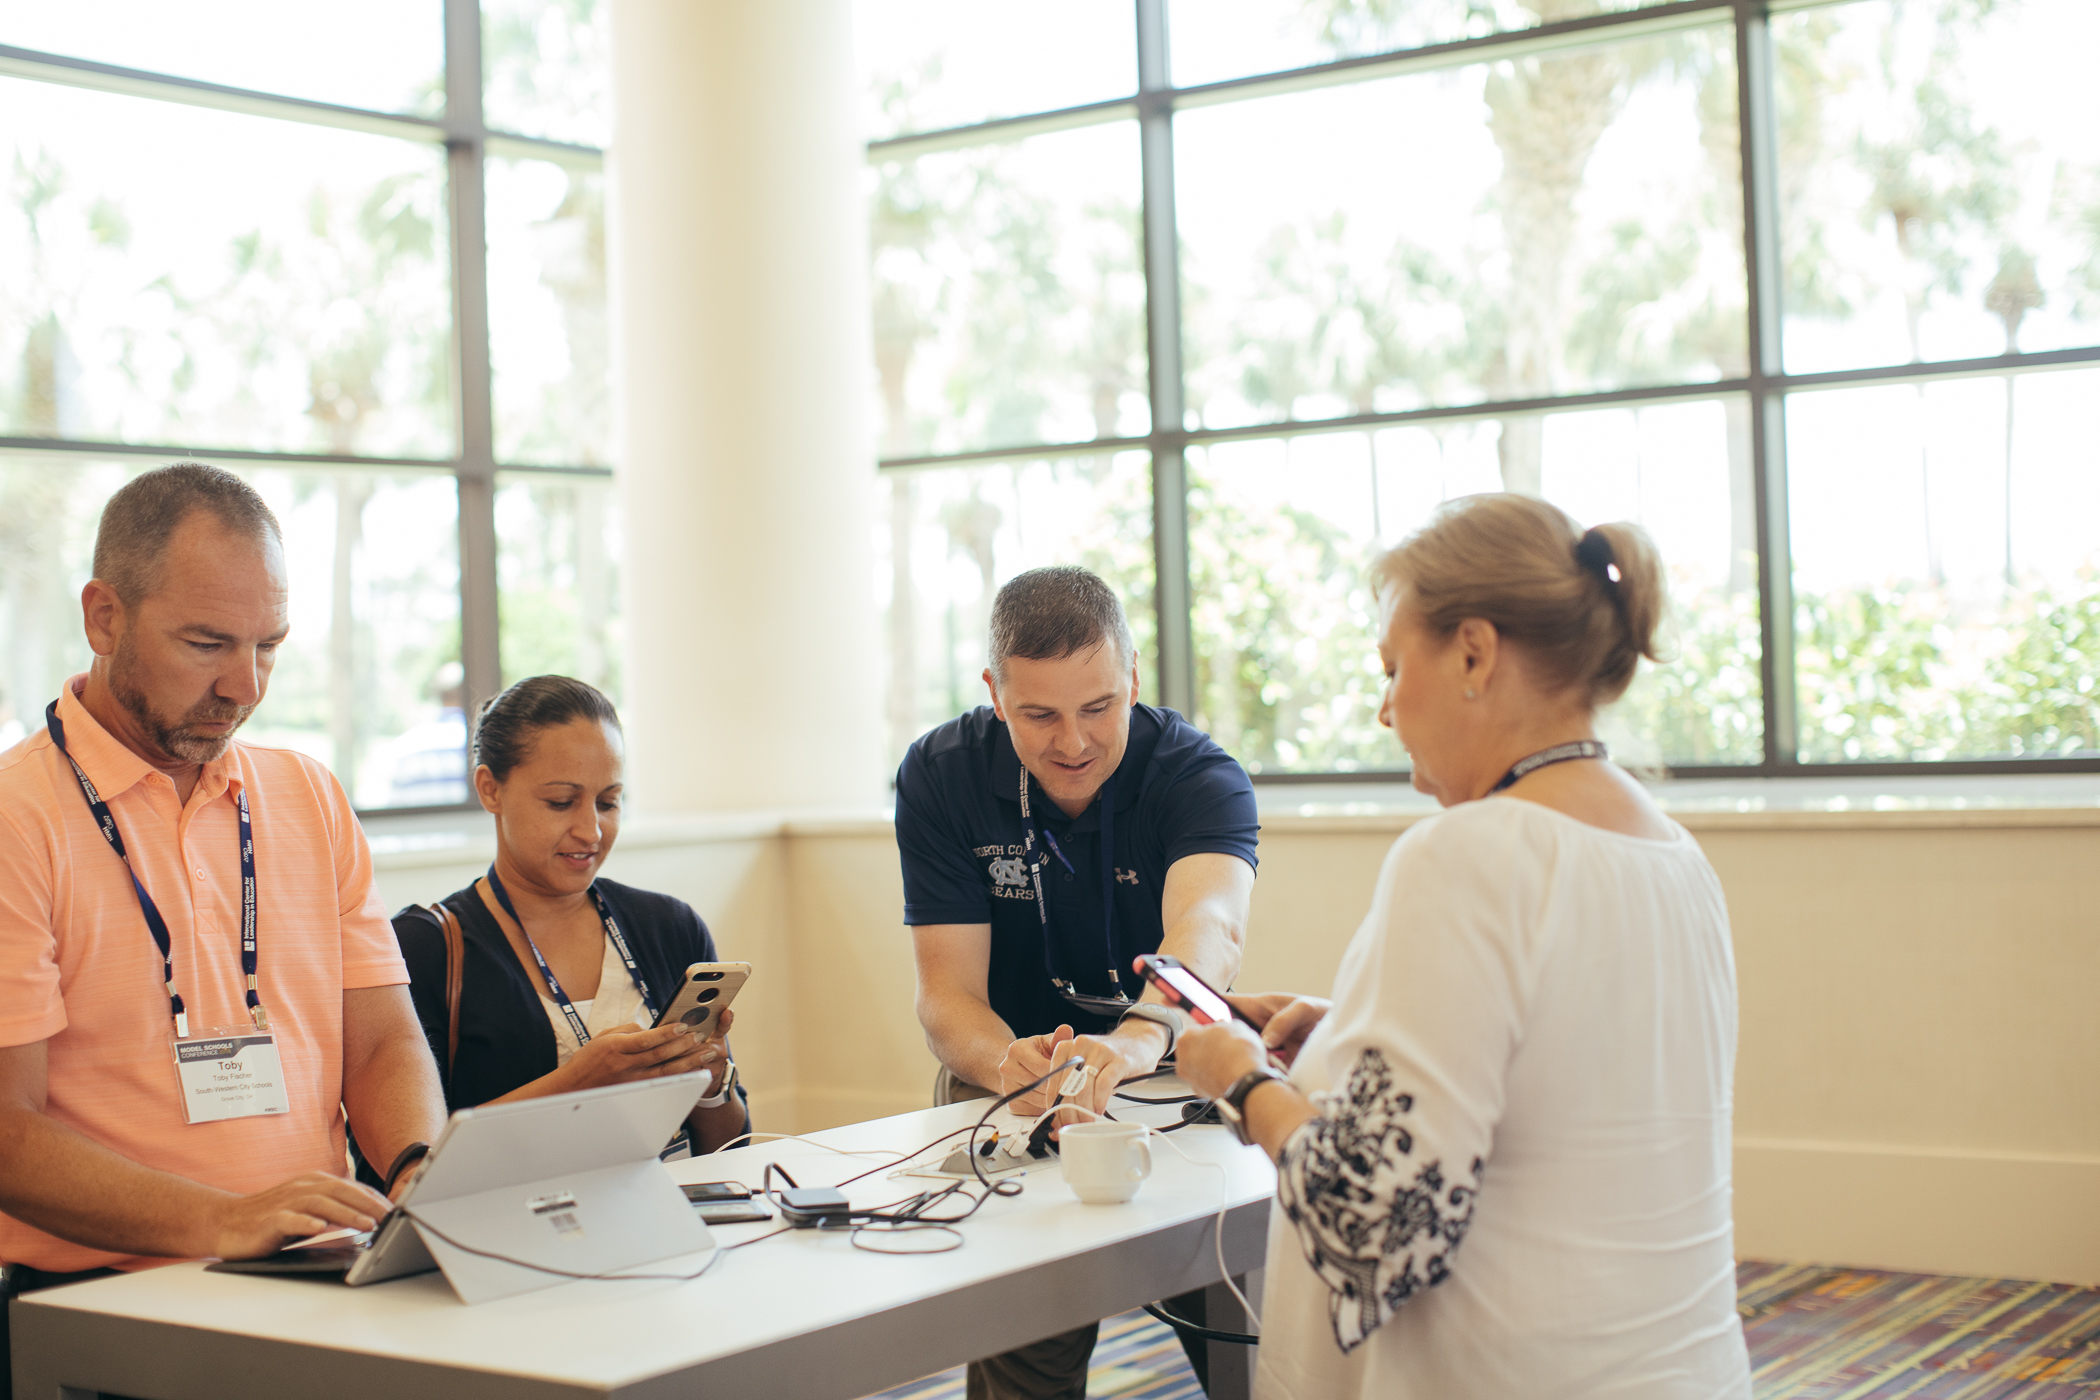 live event commercial photography brand storytelling for education florida conference photographer ©2018abigailbobophotography-73.jpg